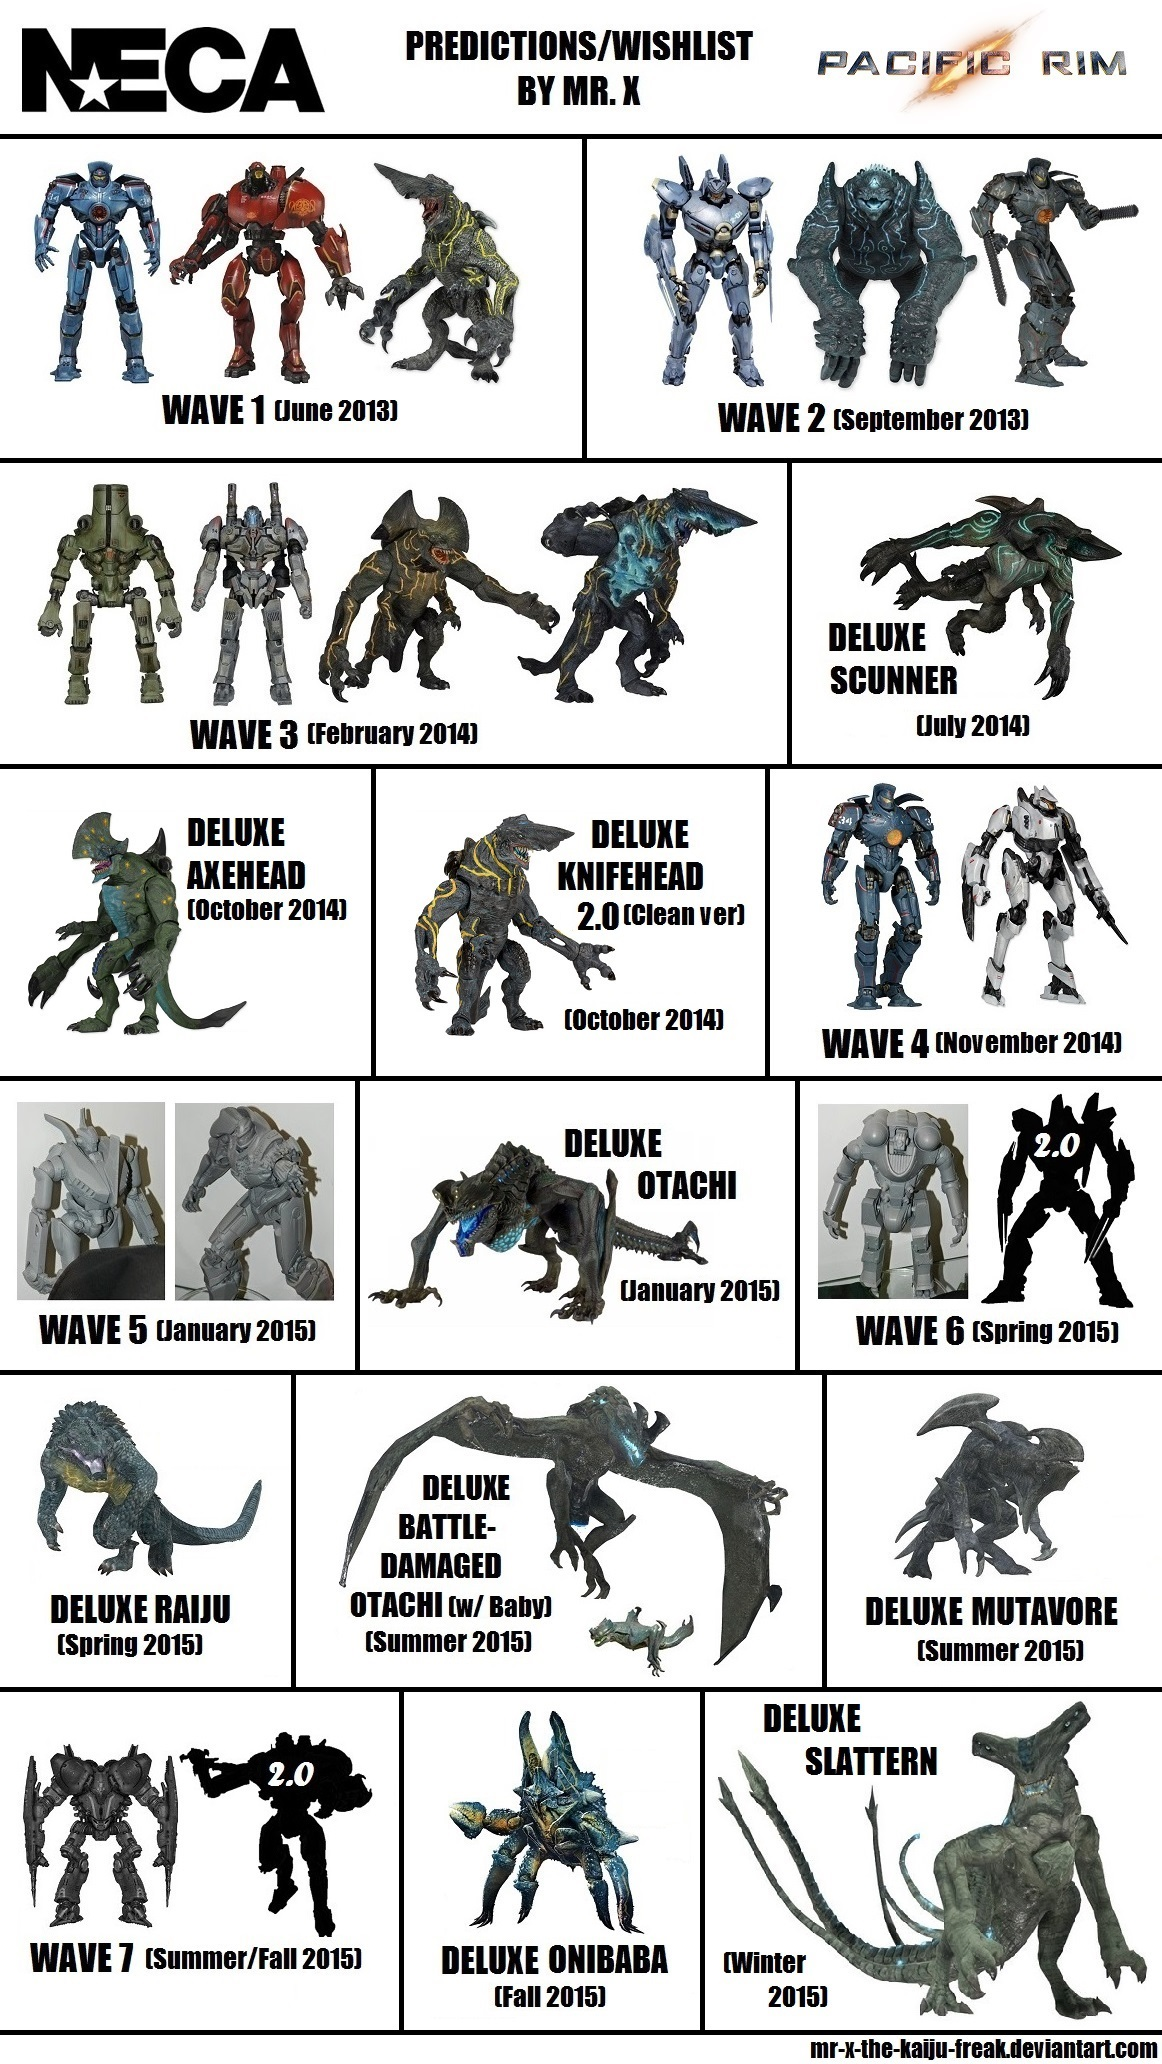 Neca Pacific Rim Predictions Wishlist 2 0 By Mr X The Kaiju Freak On Deviantart From the epic pacific rim movie! neca pacific rim predictions wishlist 2